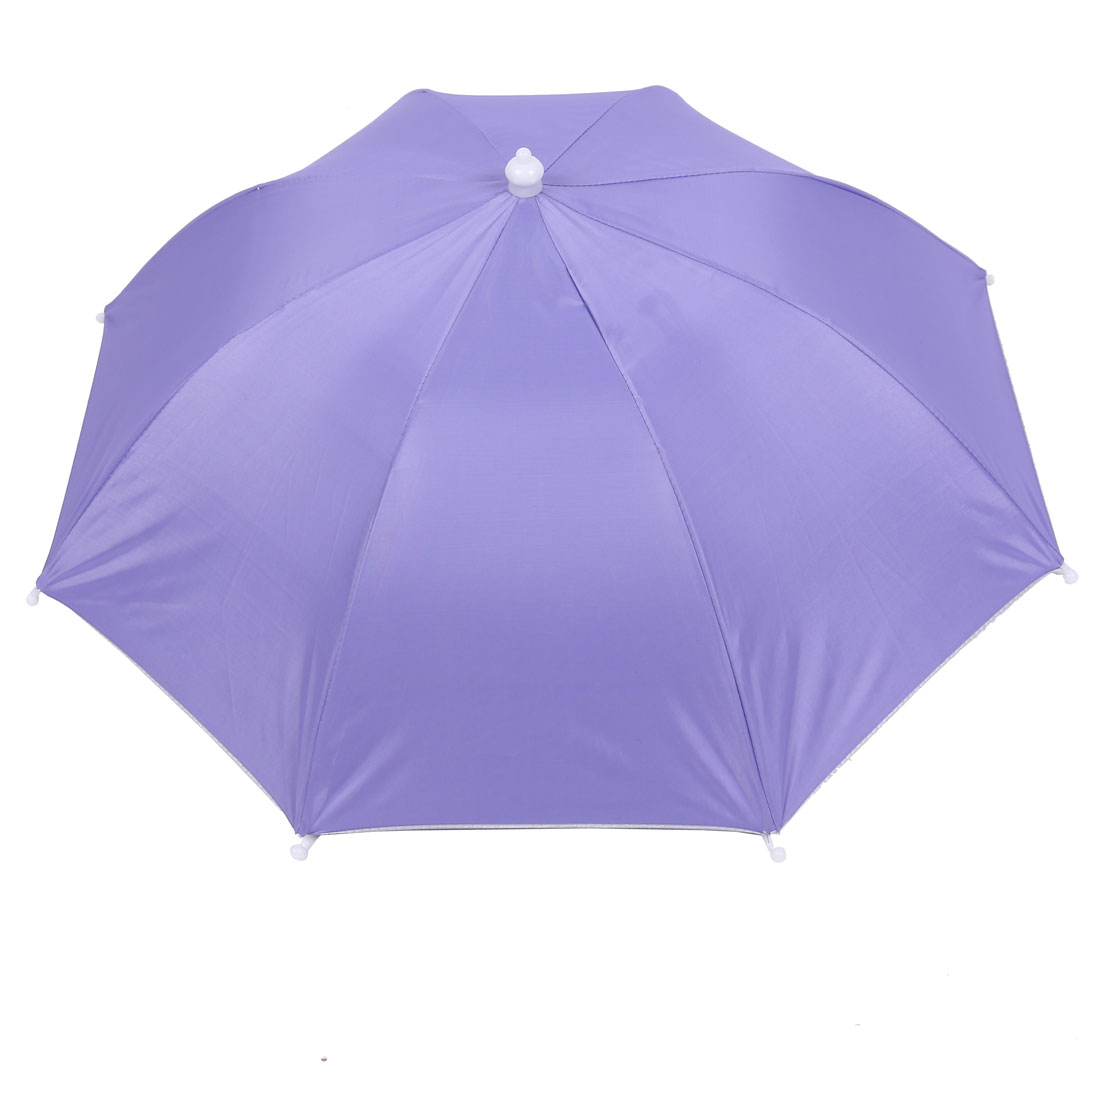 Fishing Camping Pale Blue Polyester Elastic Band Foldable Sun Umbrella Hat